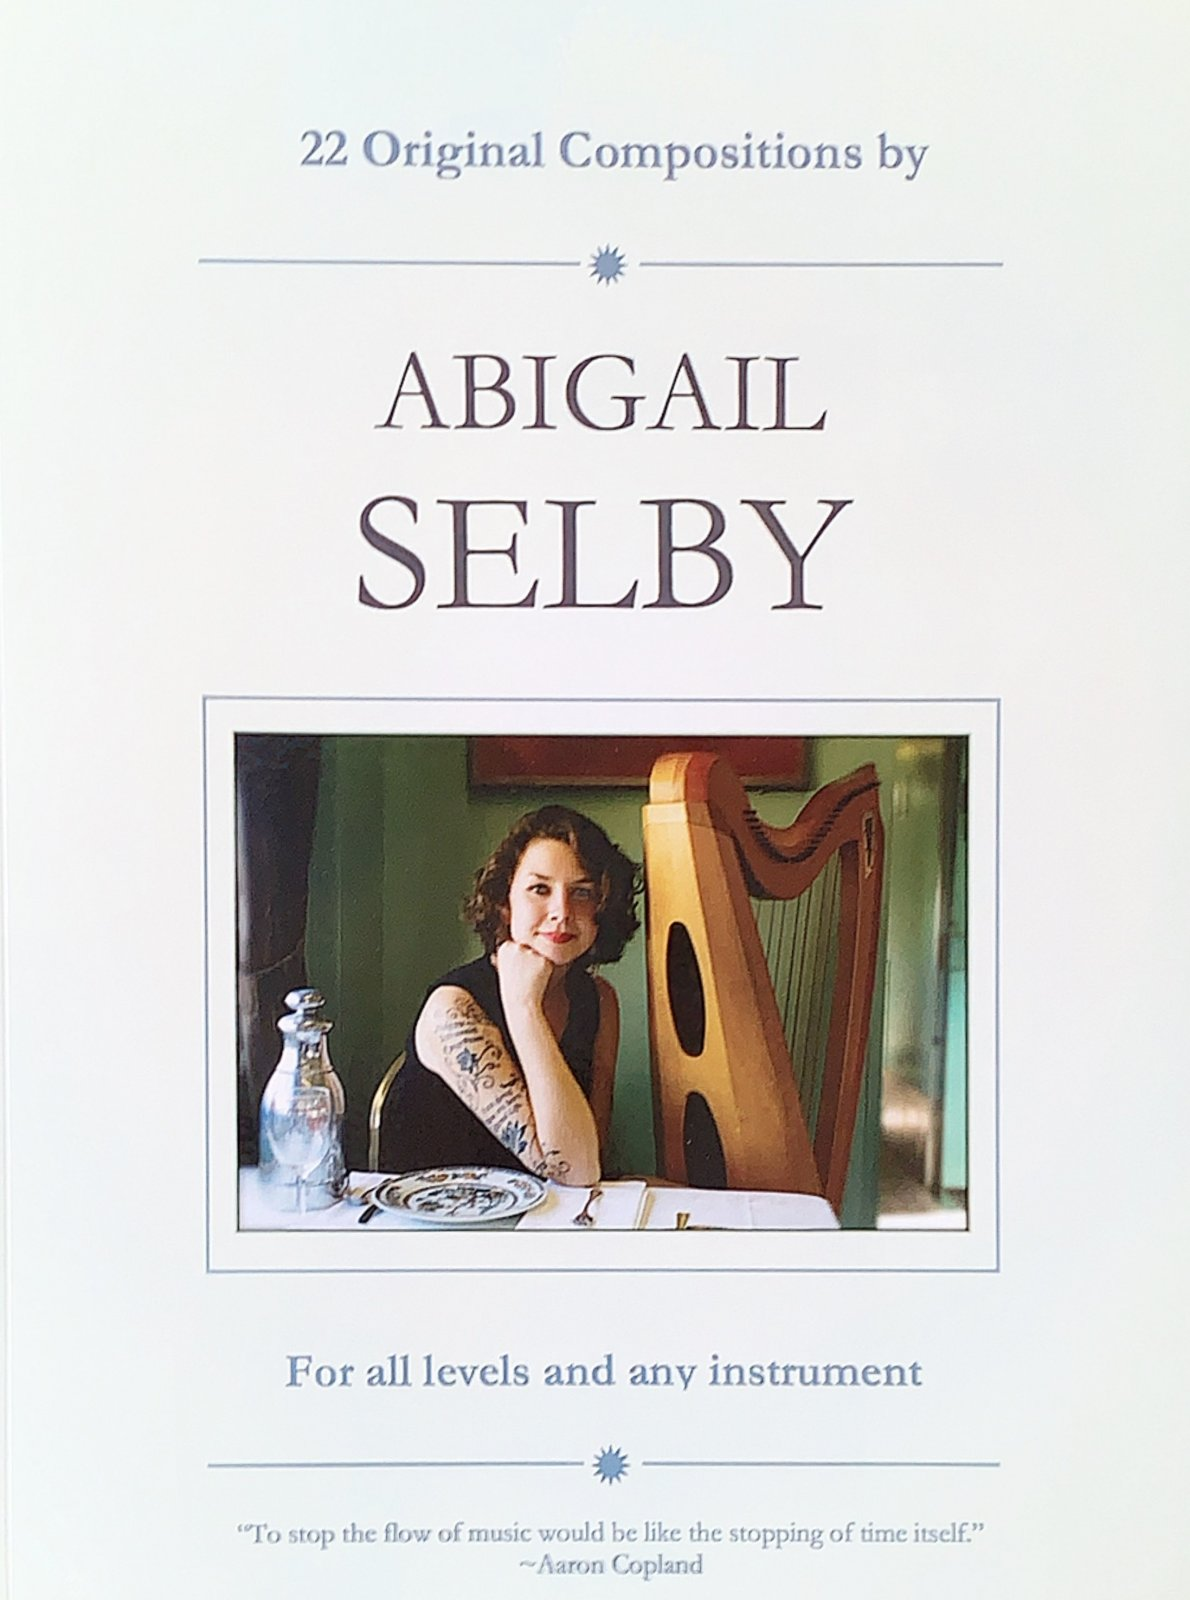 22 Original Compositions by Abigail Selby